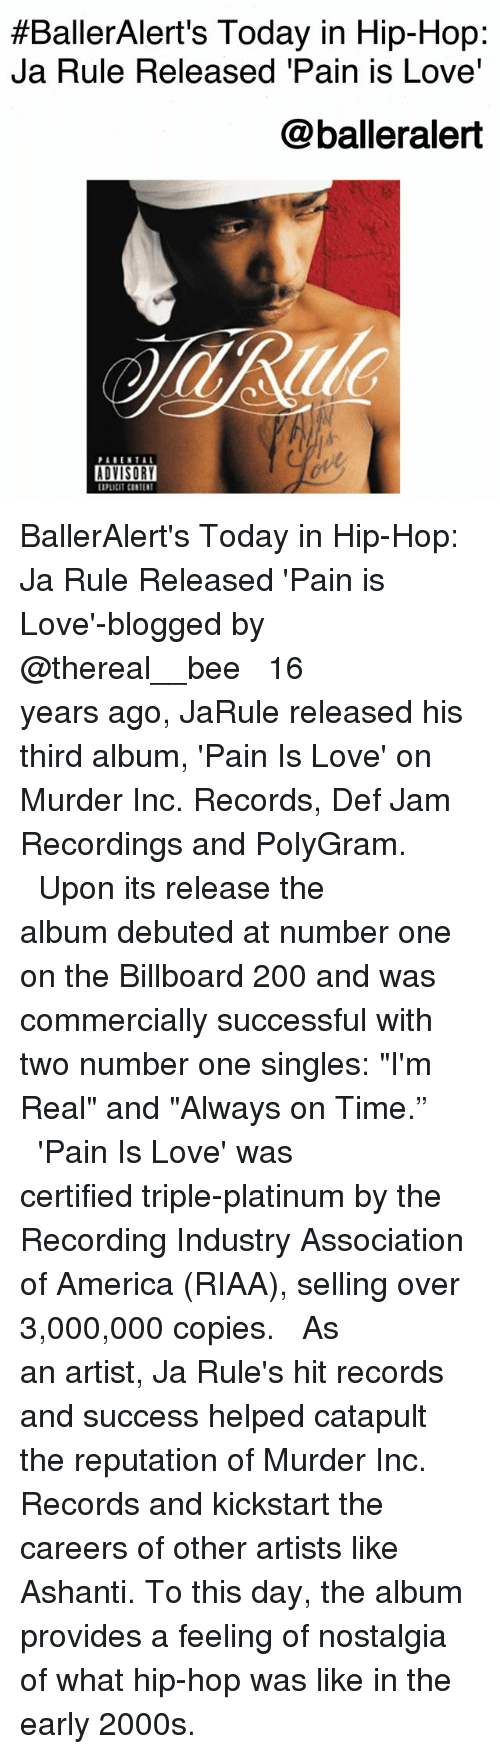 """debuted:  #BallerAlert's Today in Hip-Hop:  Ja Rule Released 'Pain is Love'  @balleralert  PARENTA  ADVISORY  PLICIT CONTENT BallerAlert's Today in Hip-Hop: Ja Rule Released 'Pain is Love'-blogged by @thereal__bee ⠀⠀⠀⠀⠀⠀⠀⠀⠀ ⠀⠀ 16 years ago, JaRule released his third album, 'Pain Is Love' on Murder Inc. Records, Def Jam Recordings and PolyGram. ⠀⠀⠀⠀⠀⠀⠀⠀⠀ ⠀⠀ Upon its release the album debuted at number one on the Billboard 200 and was commercially successful with two number one singles: """"I'm Real"""" and """"Always on Time."""" ⠀⠀⠀⠀⠀⠀⠀⠀⠀ ⠀⠀ 'Pain Is Love' was certified triple-platinum by the Recording Industry Association of America (RIAA), selling over 3,000,000 copies. ⠀⠀⠀⠀⠀⠀⠀⠀⠀ ⠀⠀ As an artist, Ja Rule's hit records and success helped catapult the reputation of Murder Inc. Records and kickstart the careers of other artists like Ashanti. To this day, the album provides a feeling of nostalgia of what hip-hop was like in the early 2000s."""